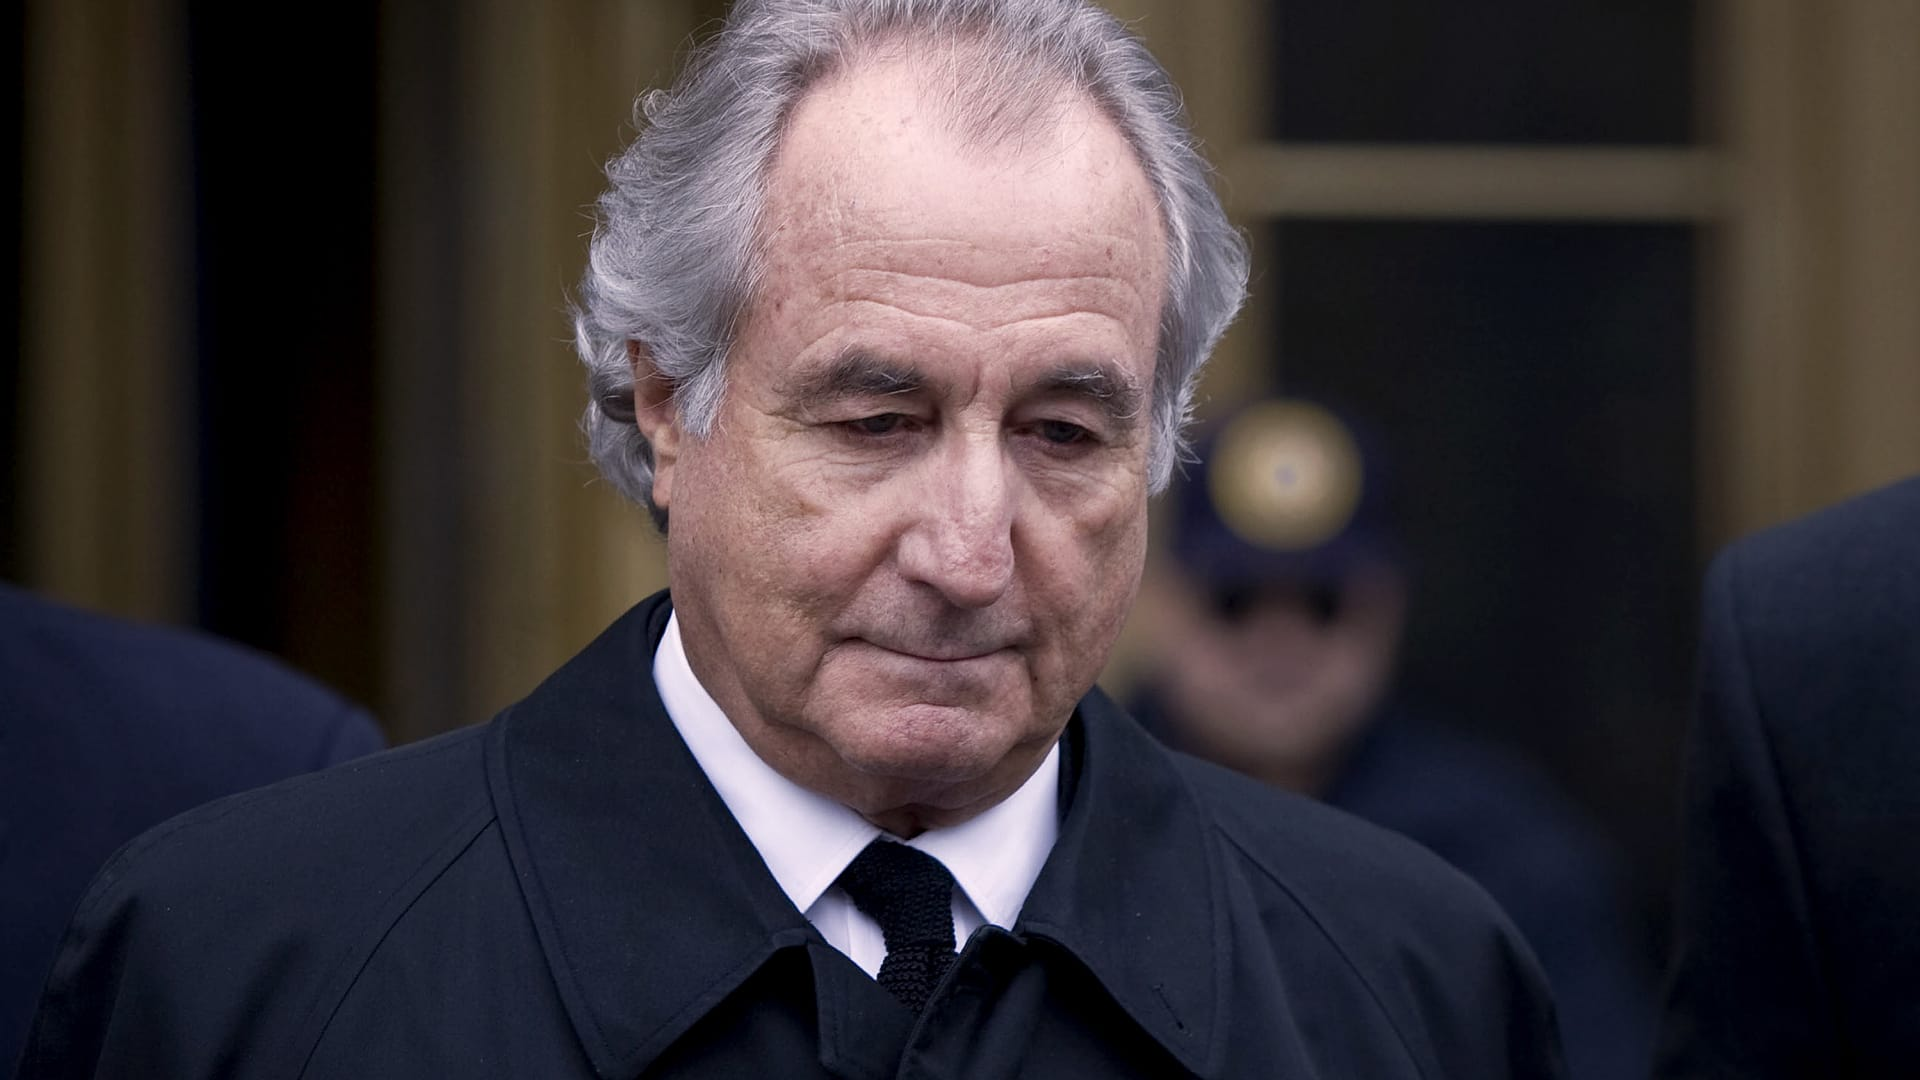 Bernie Madoff leaves federal court in New York on March 10, 2009.